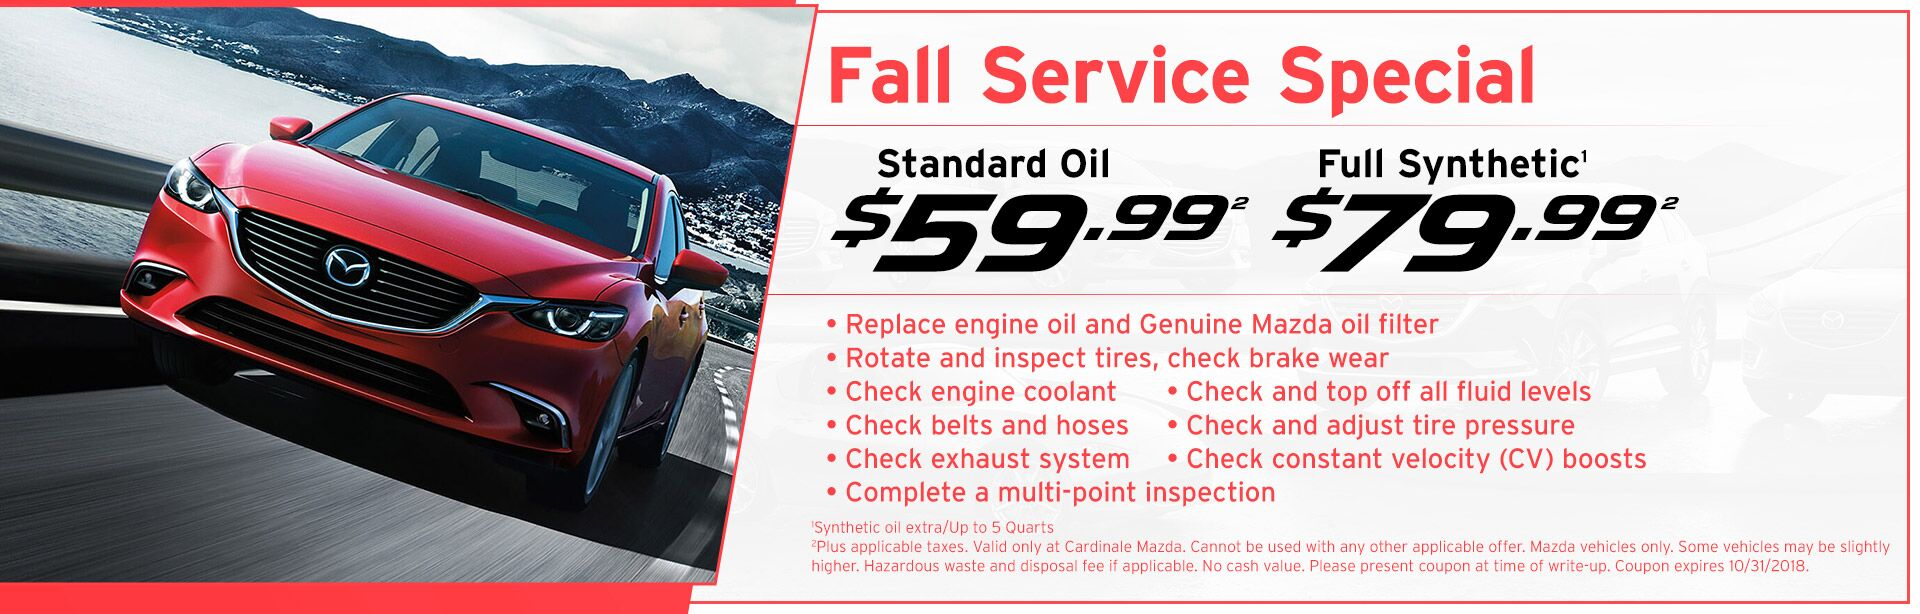 Fall Service Special